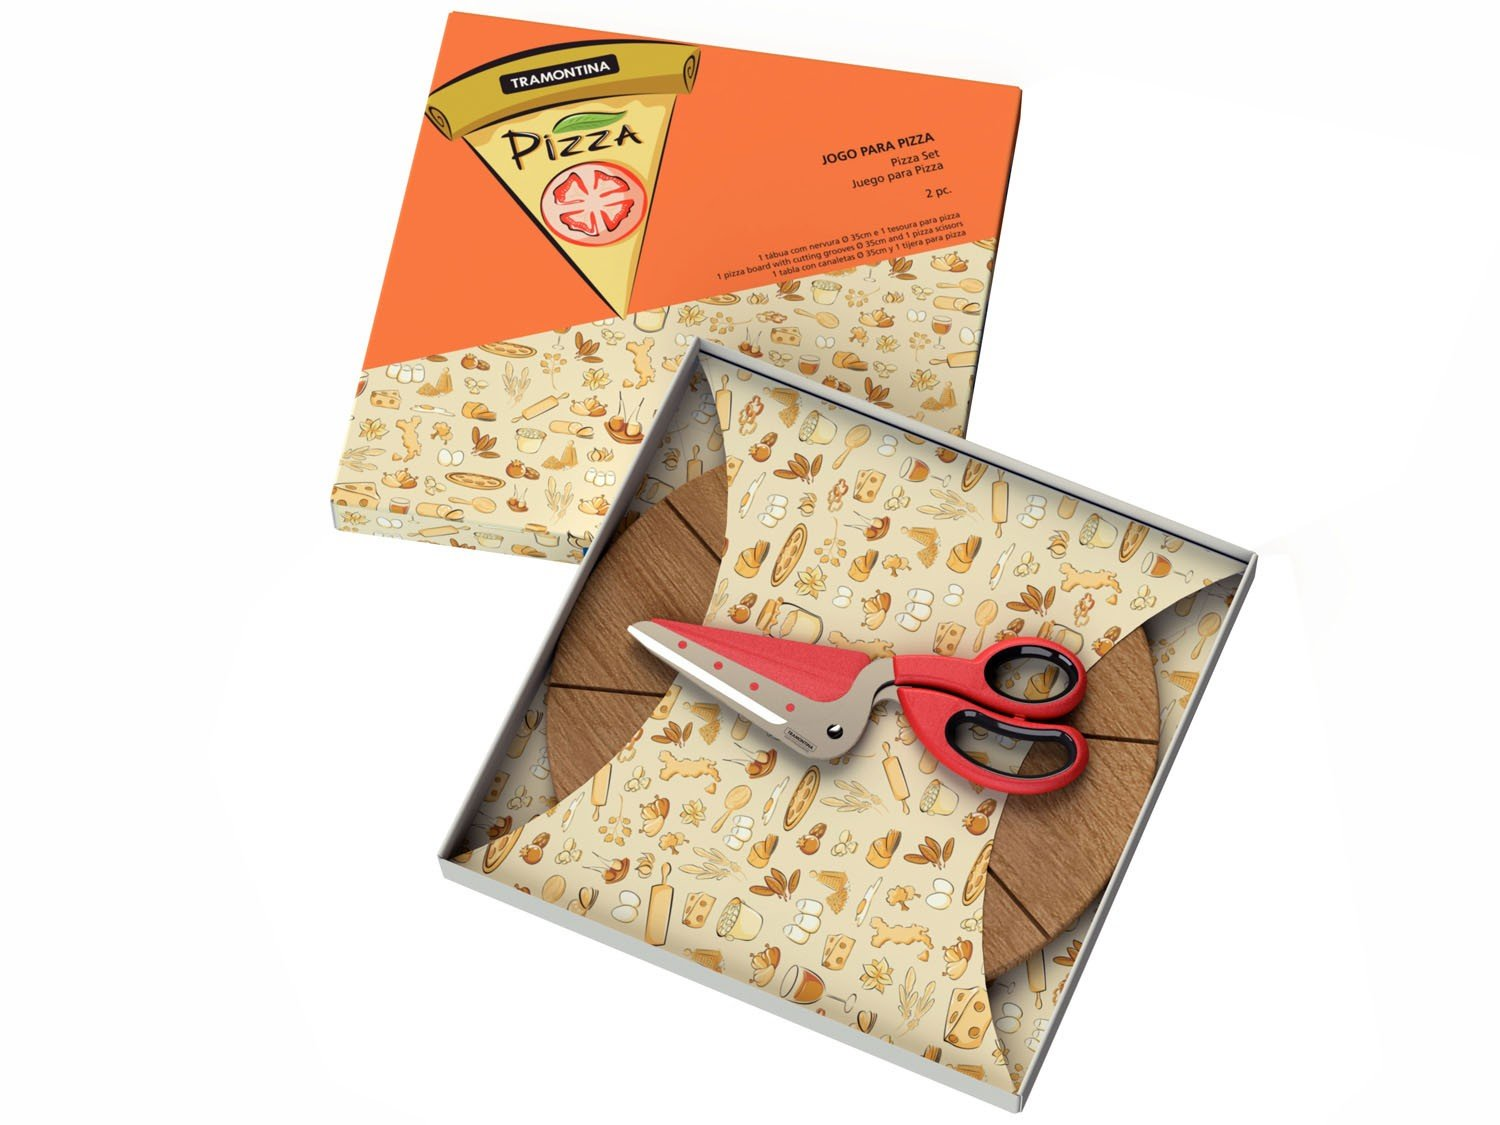 Conjunto para pizza 2 pe as tramontina 25099 717 for Utensilios pizza